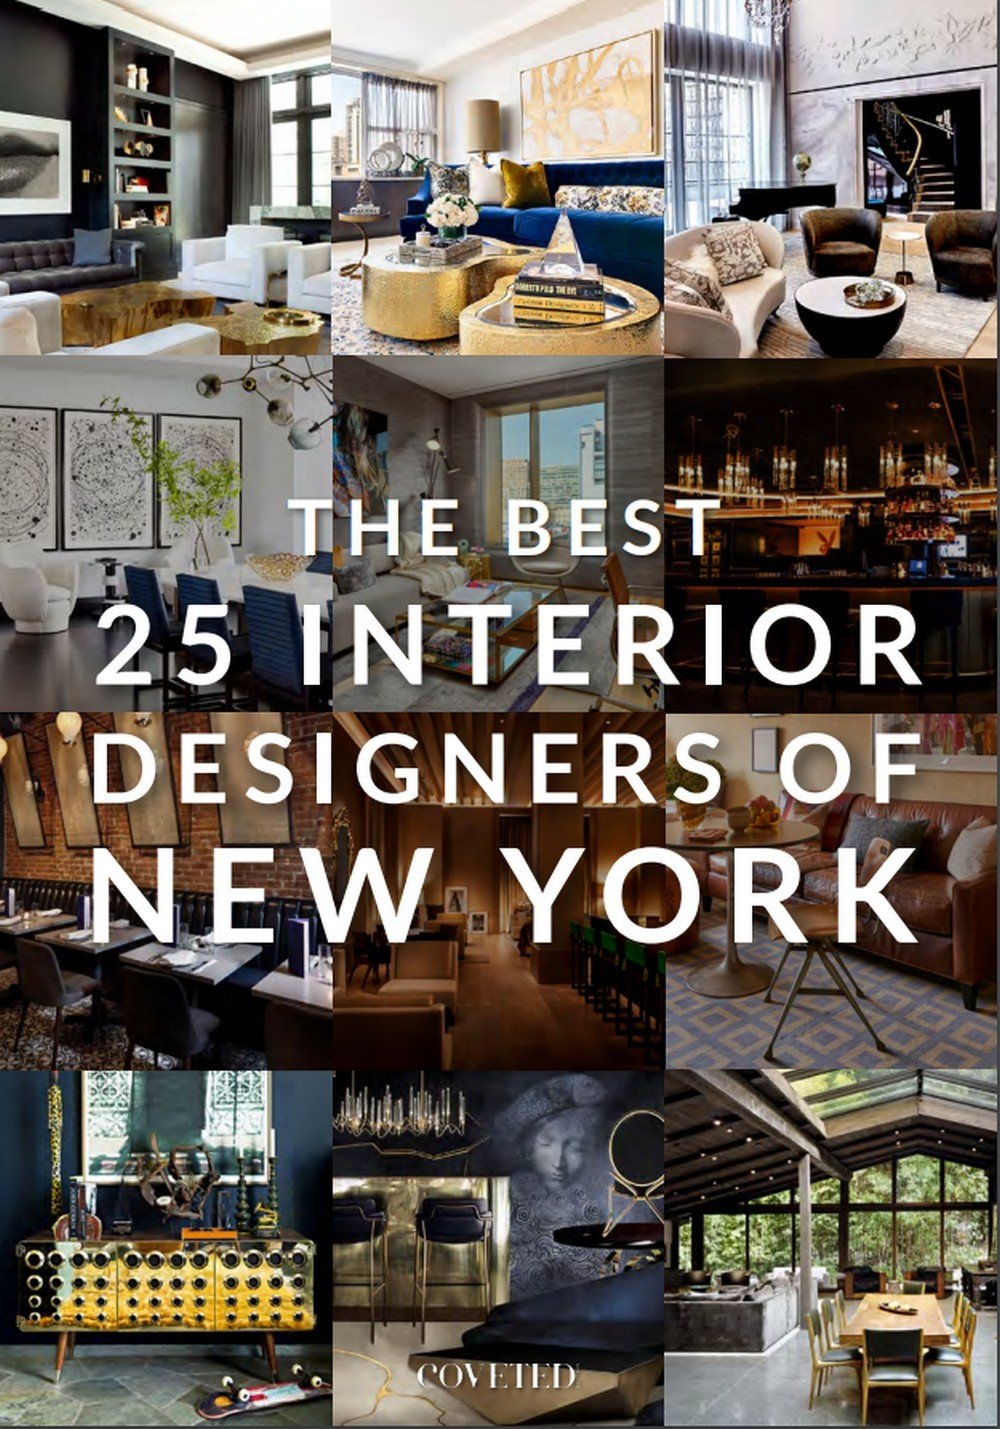 This Fabulous Ebook Feature NYC's Best 25 Interior Designers Of 2019 interior designers This Fabulous Ebook Feature NYC's Best 25 Interior Designers Of 2019 This Fabulous Ebook Feature NYCs Best 25 Interior Designers Of 2019 1